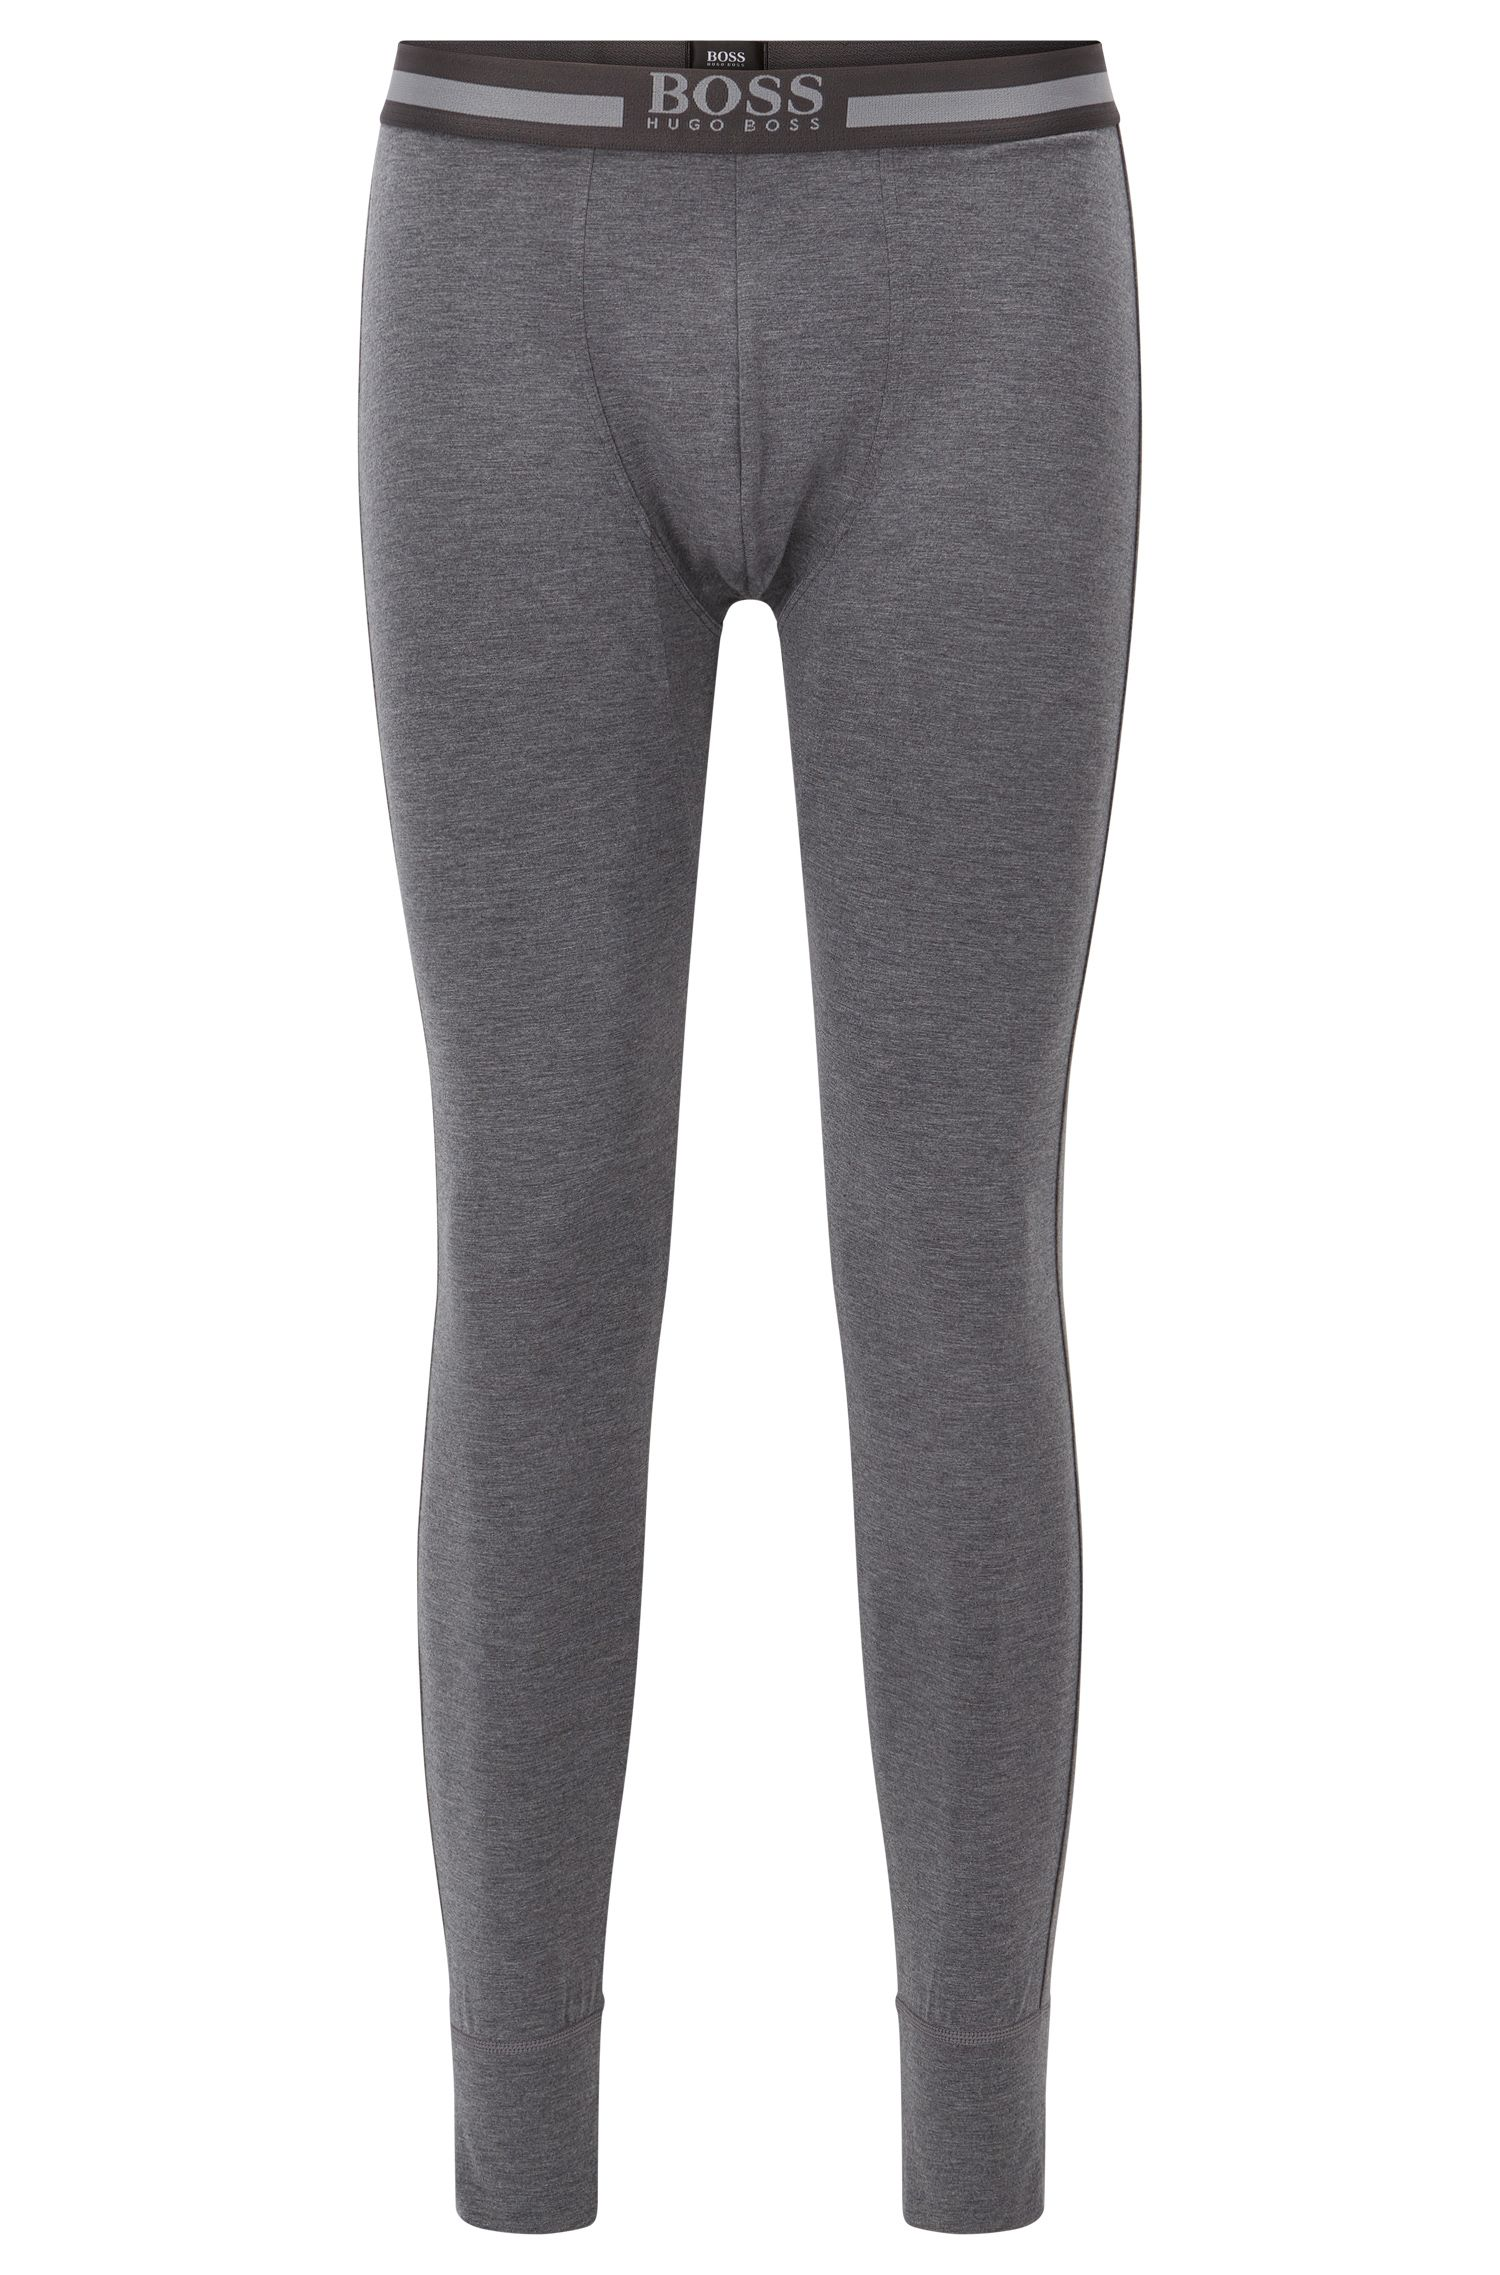 Stretch long johns with heat retention fabric